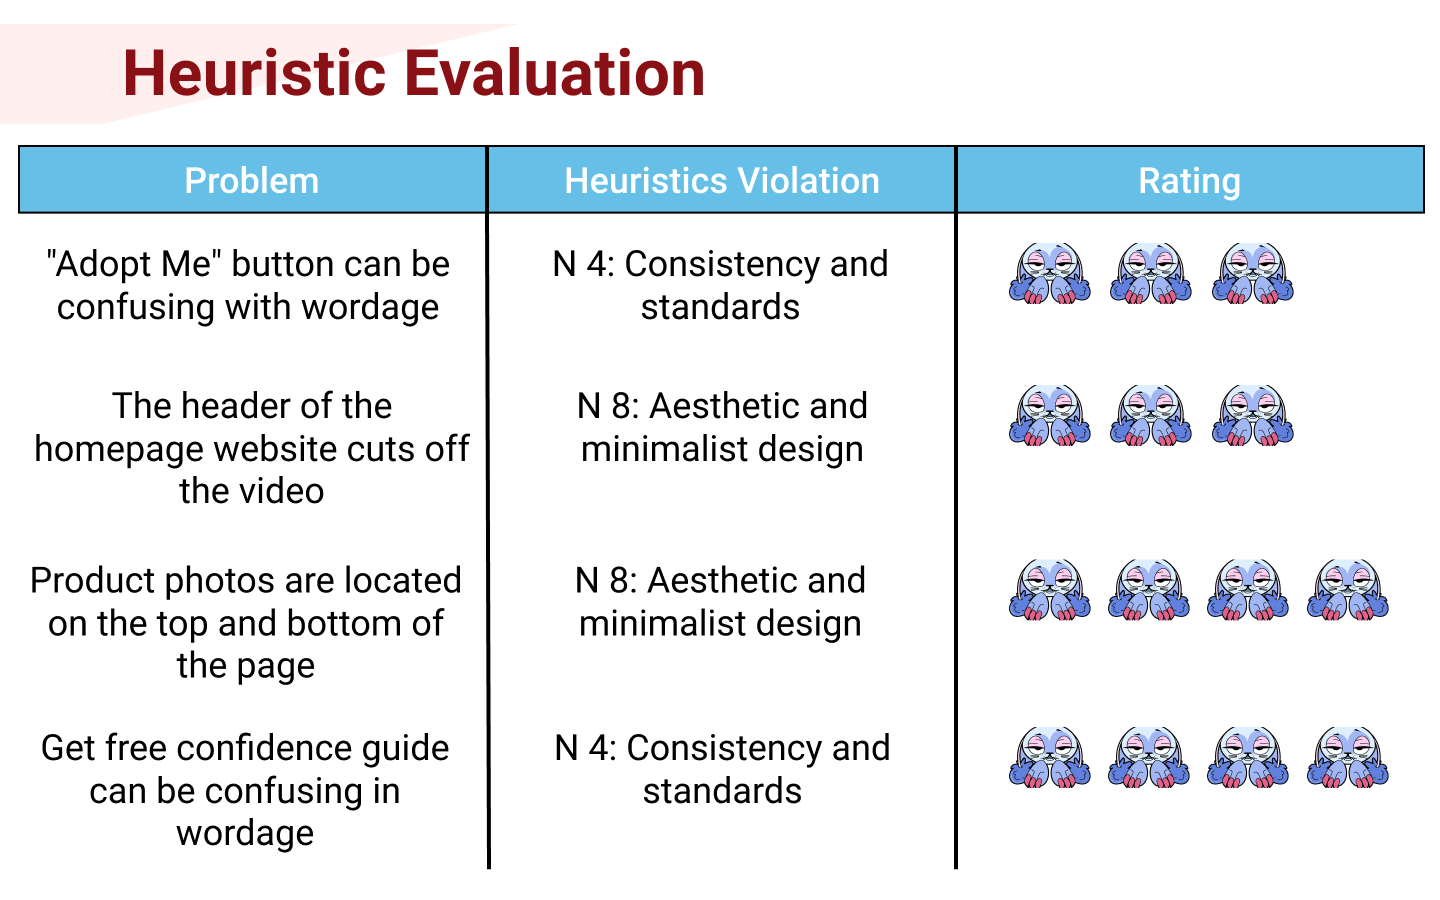 5. Heuristics Evaluation.png